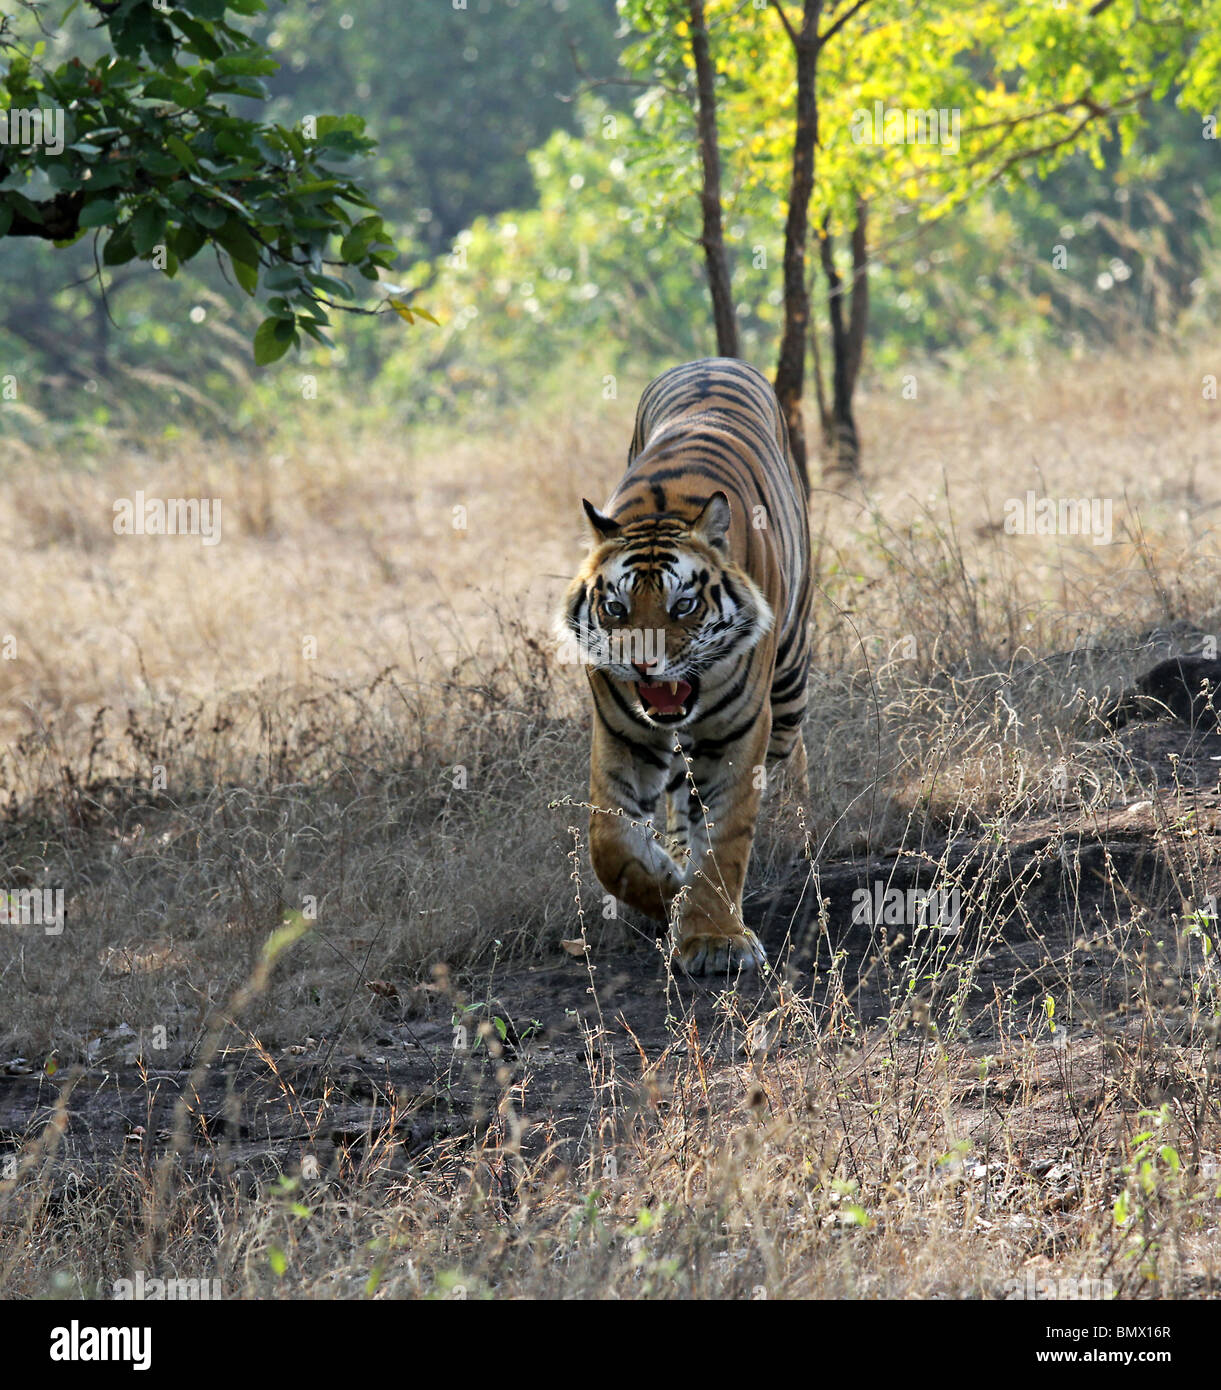 A Male Tiger comes down from a hill snarling in anger in Bandhavgarh National Park, India - Stock Image